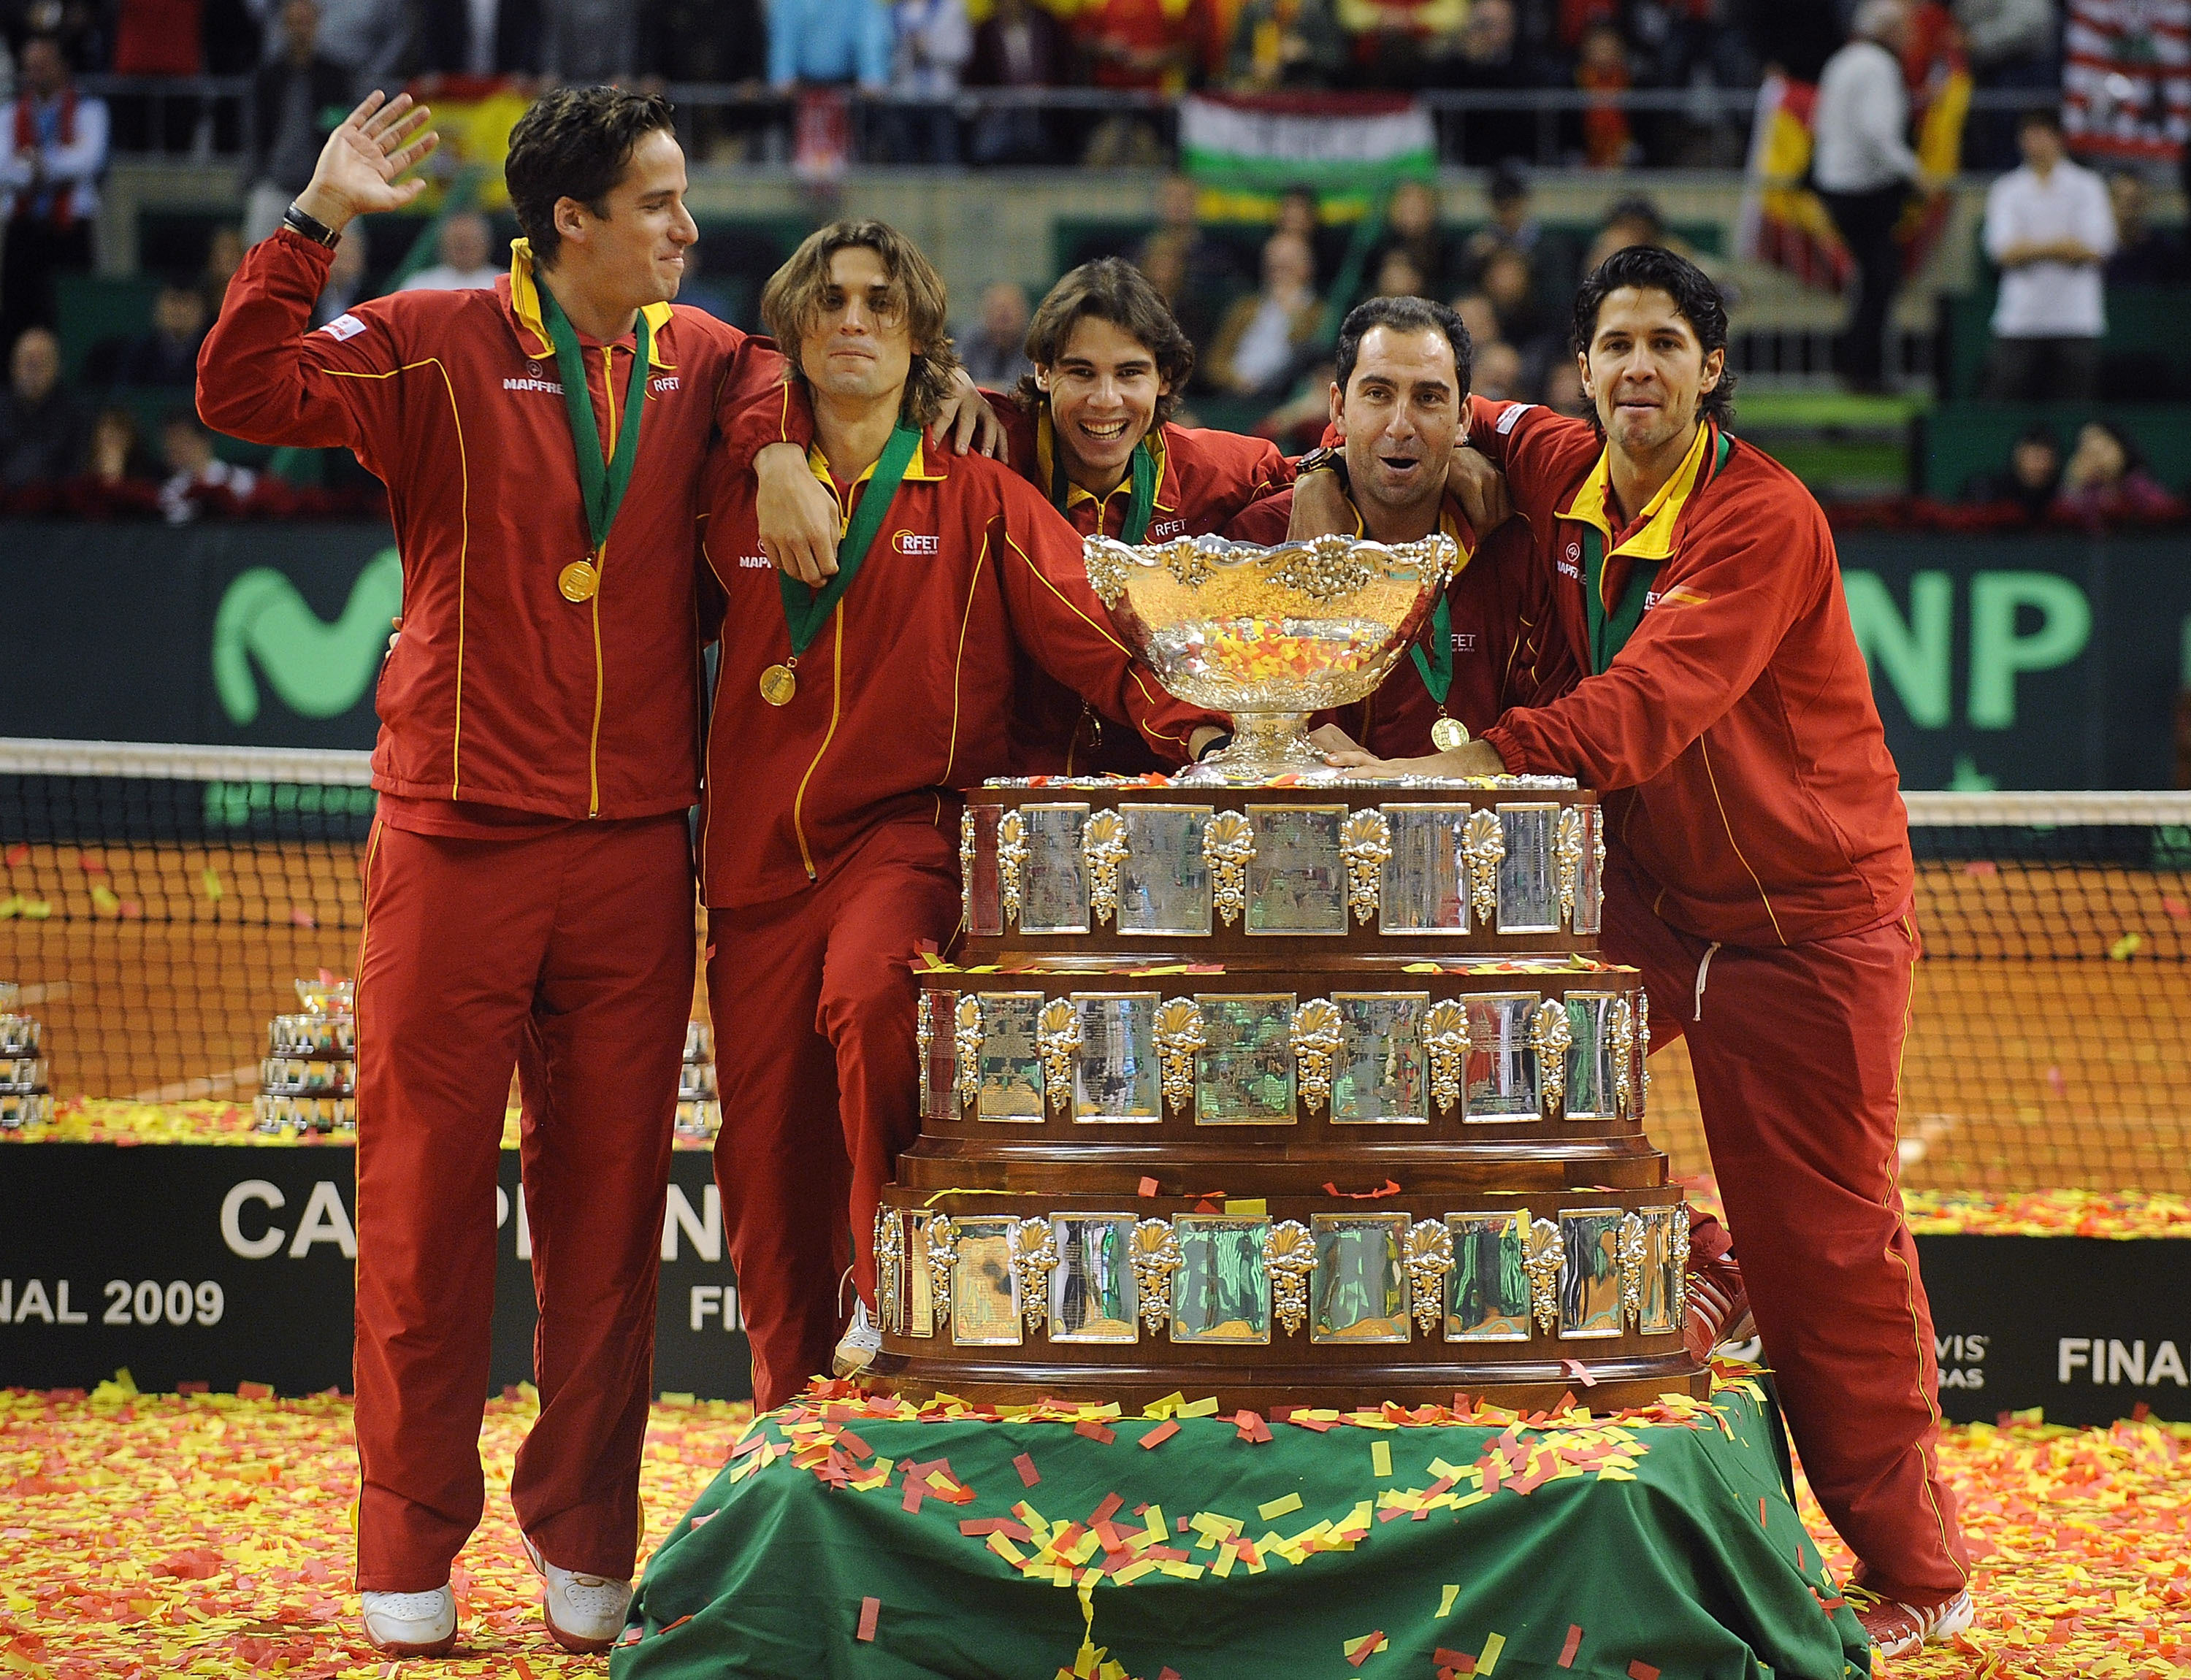 BARCELONA, SPAIN - DECEMBER 06:  Spanish players Feliciano Lopez (L), David Ferrer (C), Rafael Nadal, team captain Albert Costa and Fernando Verdasco celebrate with the Davis Cup trophy at the end of the final match between Spain and Czech Republic at the